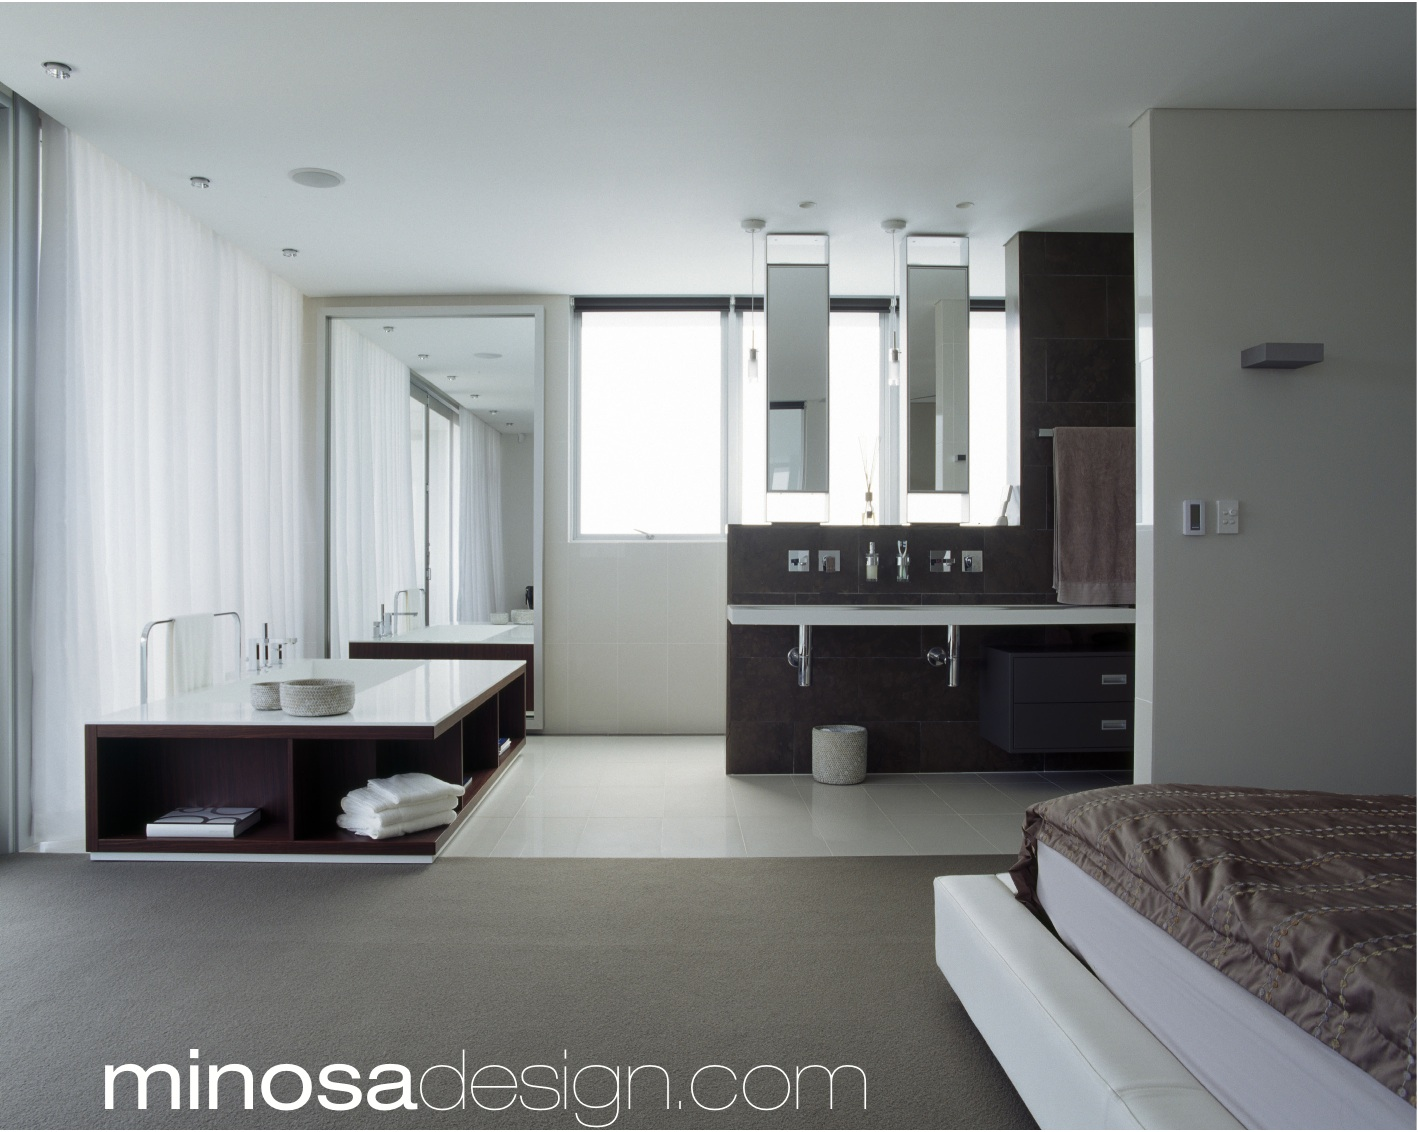 Minosa: Sydney Living - Kitchen & Bathrooms Design ...